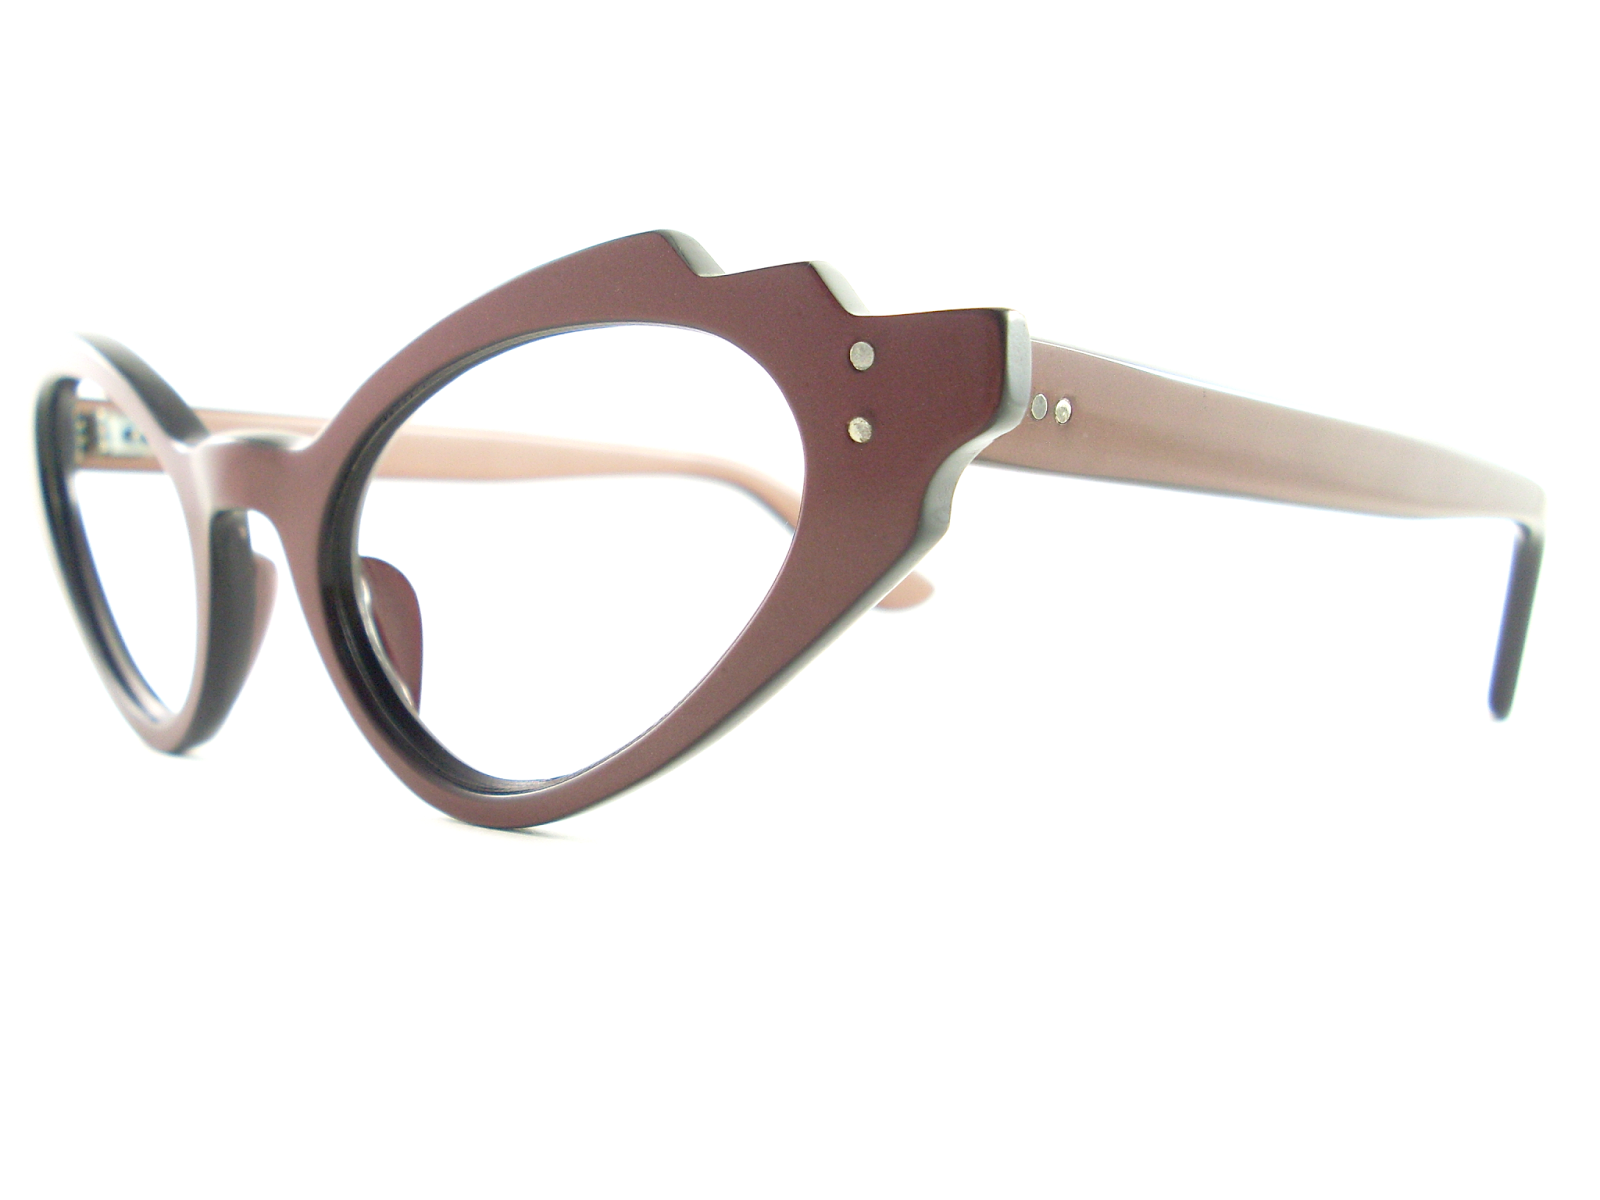 95e2f4e9ee SCALLOPED VINTAGE CAT EYE EYEGLASSES MAKE A STUNNING STATEMENT. THE FRAME  IS A RICH SHINY BROWN COLOUR OVER A BLACK BASE WITH 2 SILVER STUDS AT EACH  WING ...